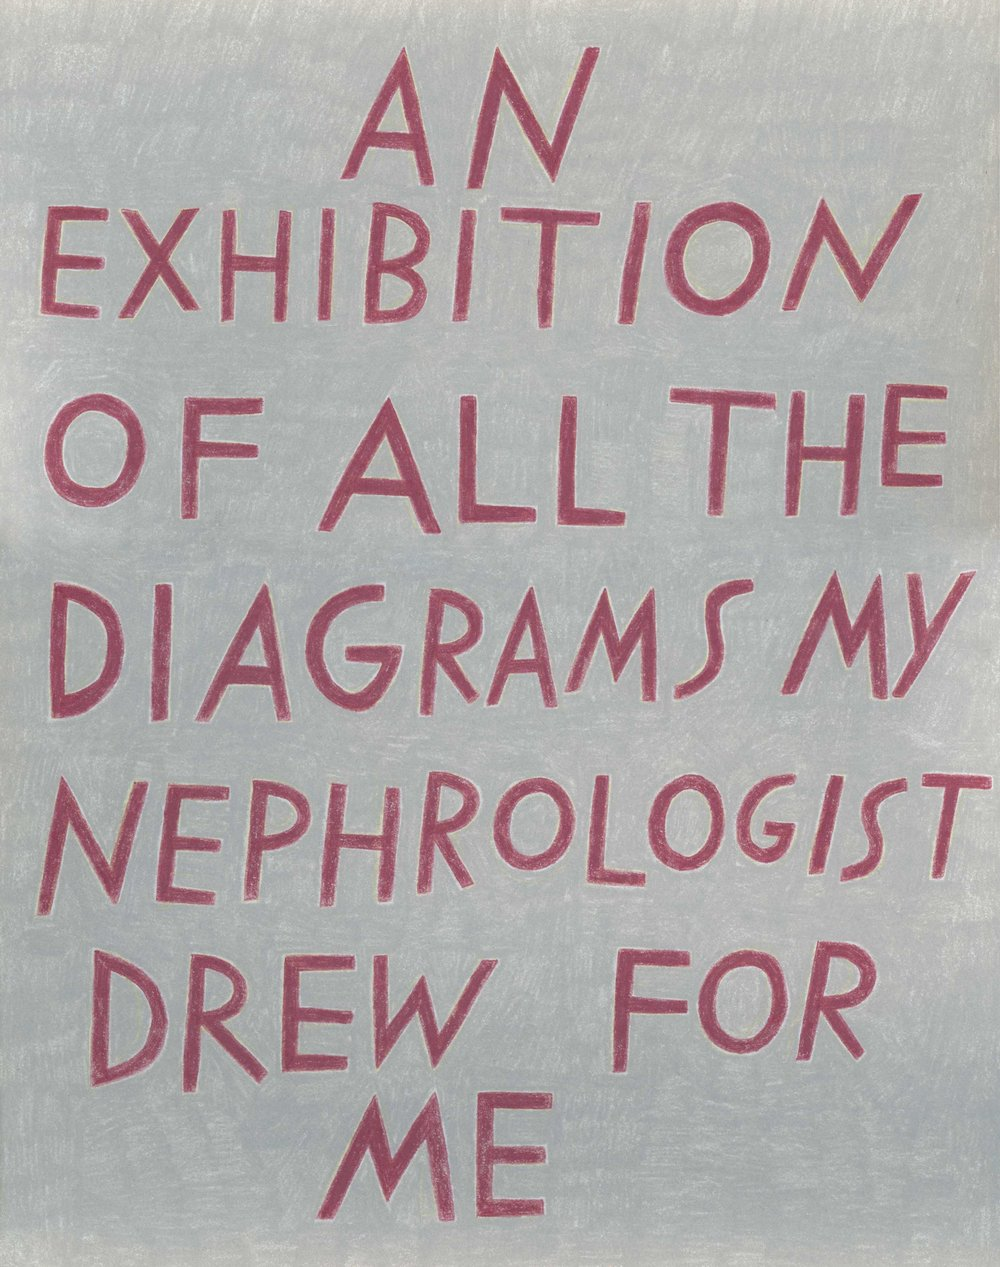 """An exhibition of all the diagrams my nephrologist drew for me,"" in burgundy on gray."